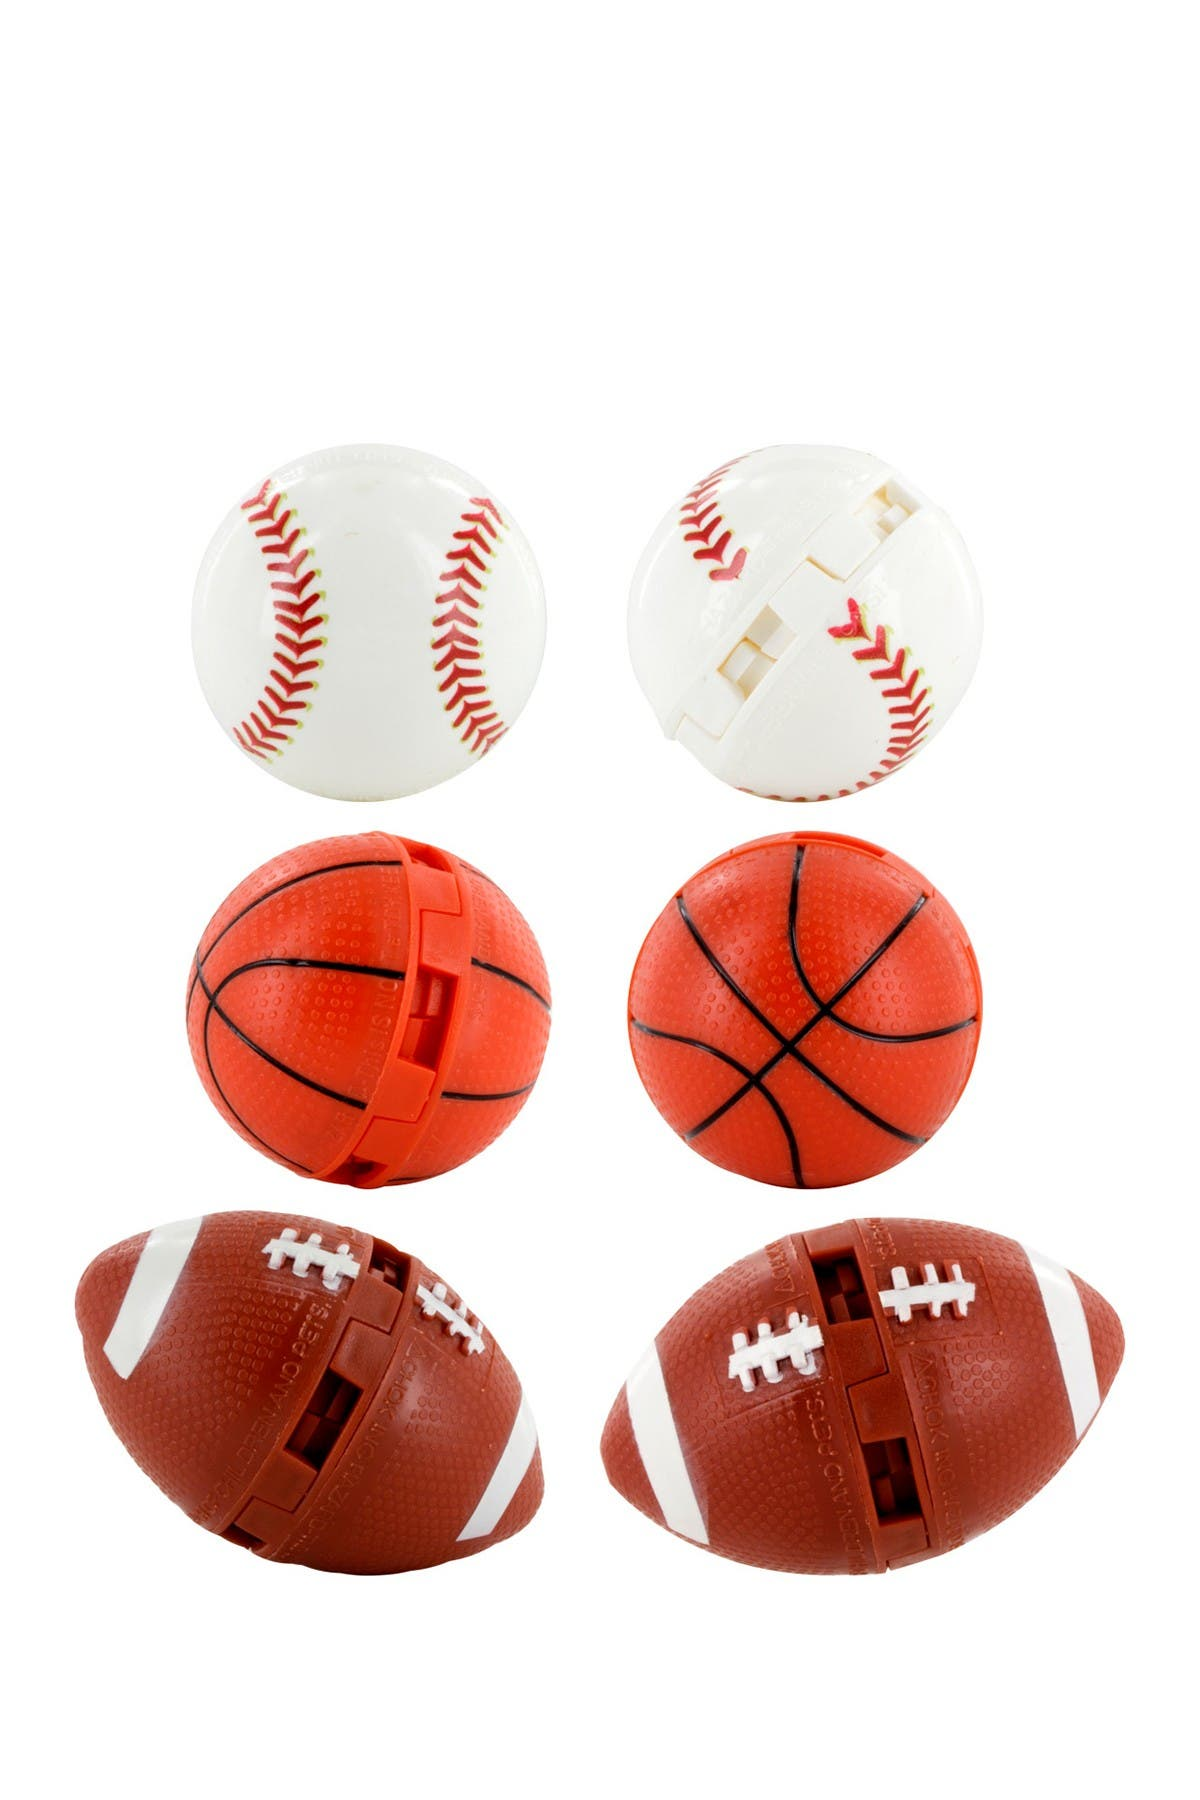 Image of IMPLUS Sneaker Balls 6-Pack